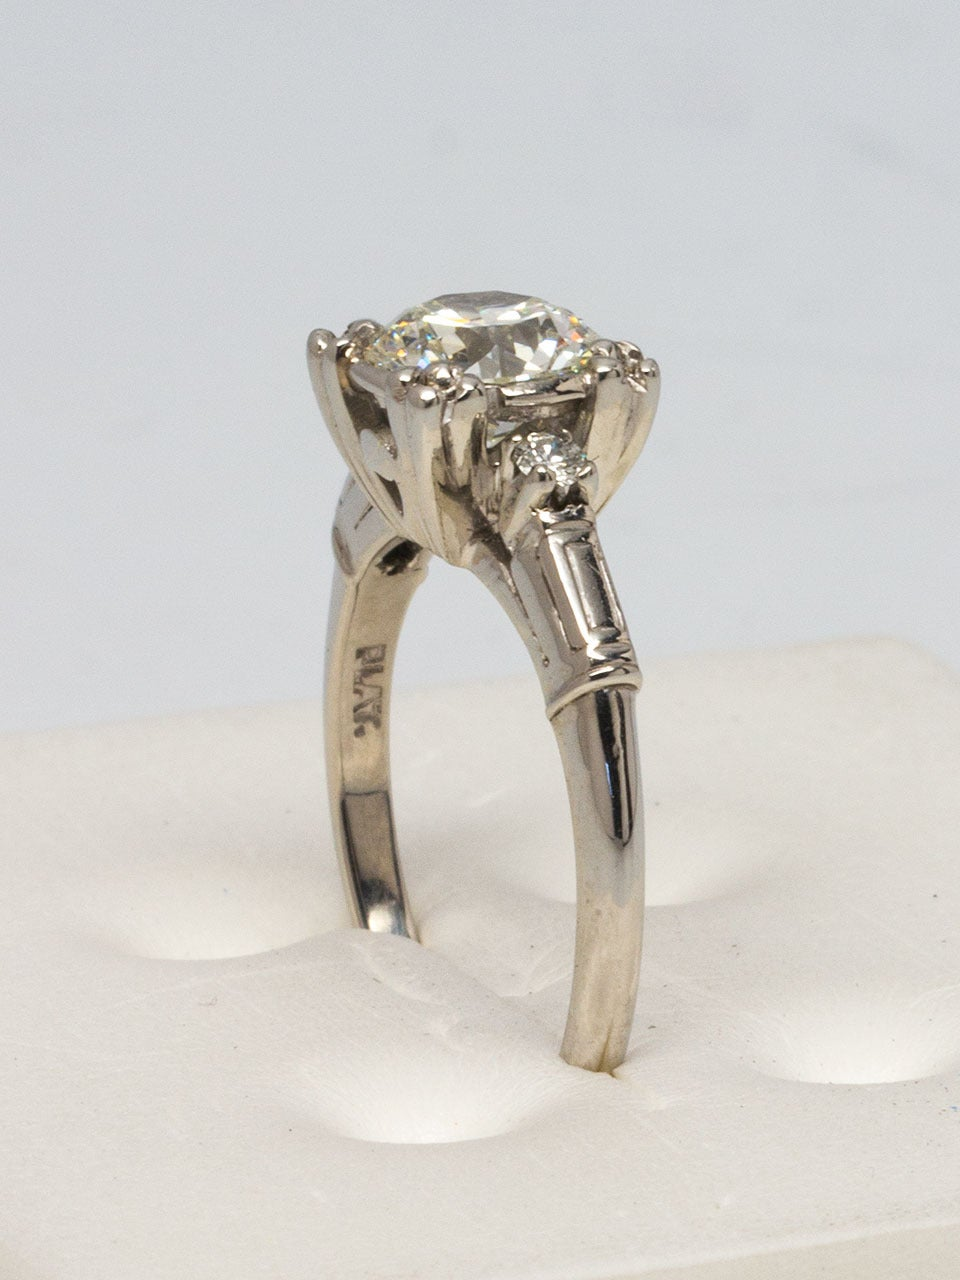 1950s Platinum and Diamond Engagement Ring For Sale at 1stdibs